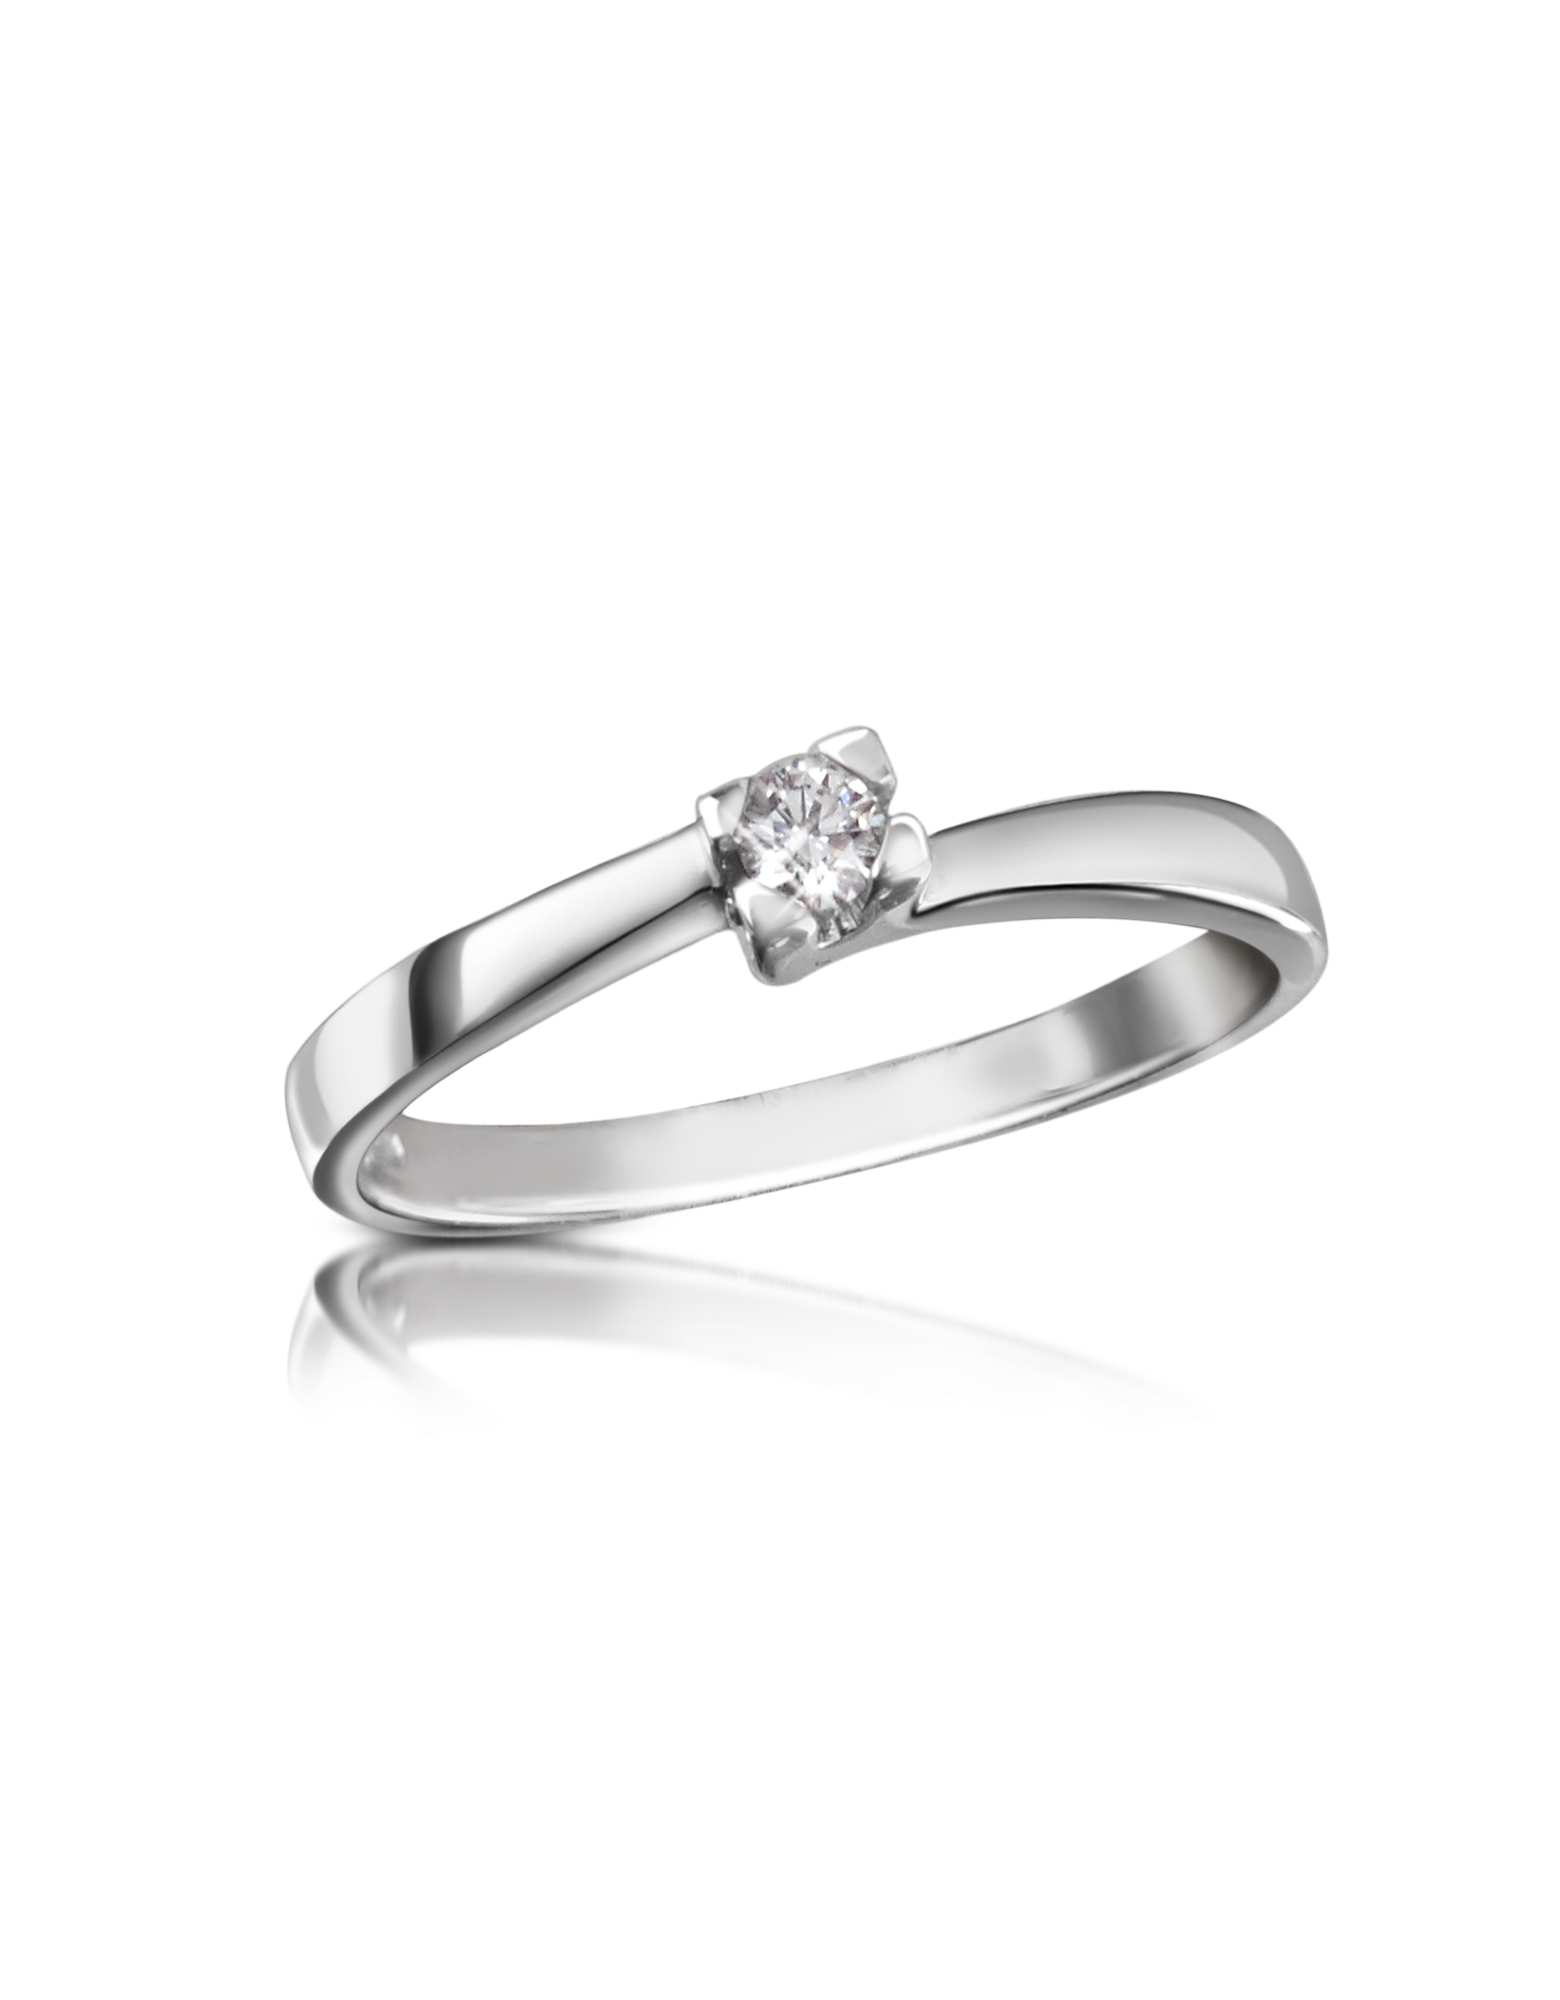 Image of 0.08 ctw Diamond Solitaire Ring